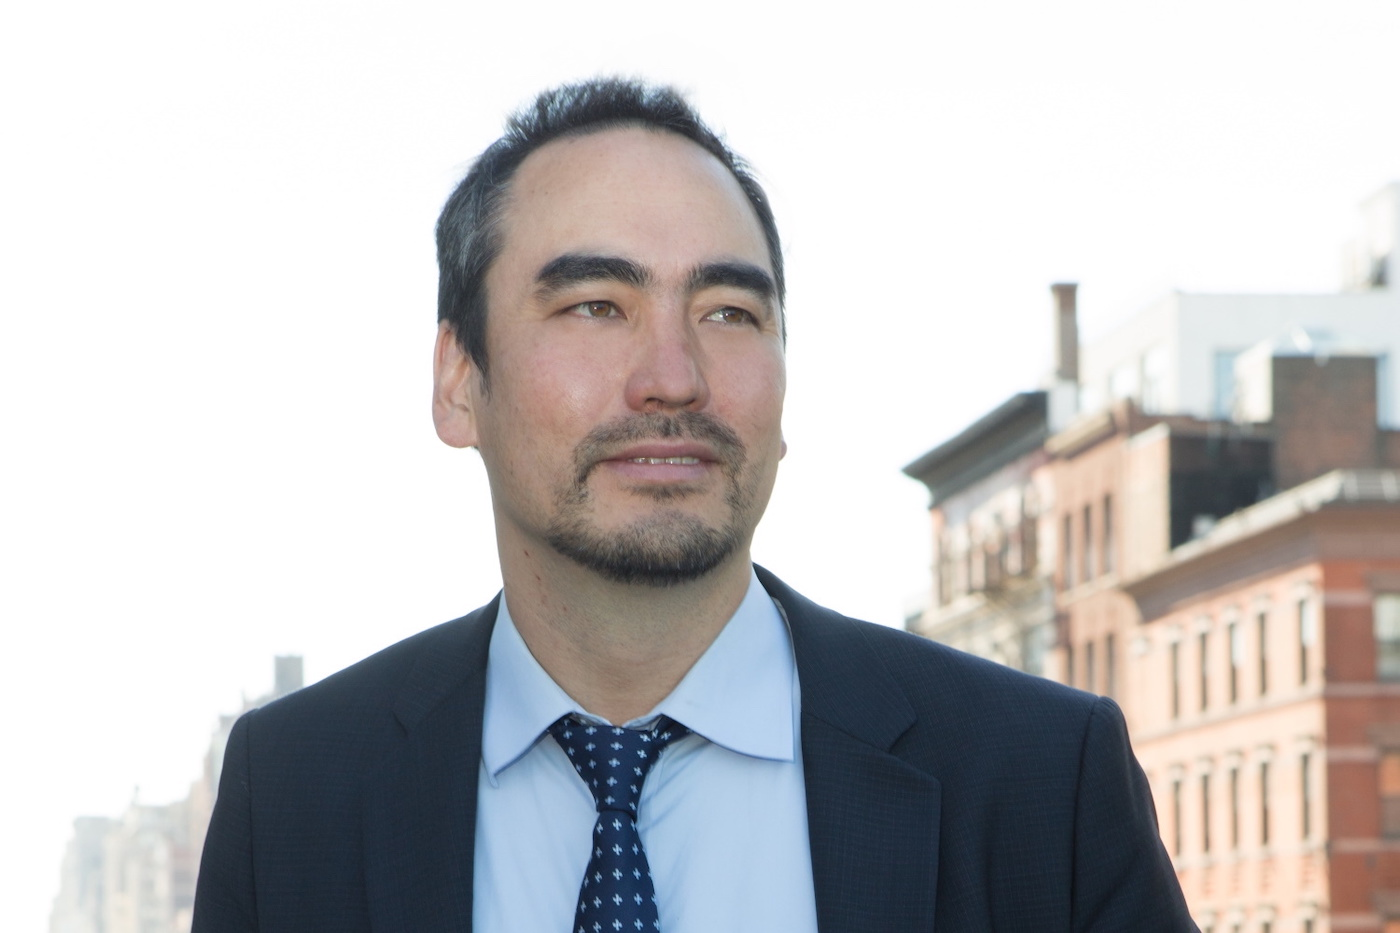 Top White House Adviser Tim Wu Holds Millions in Bitcoin: Report